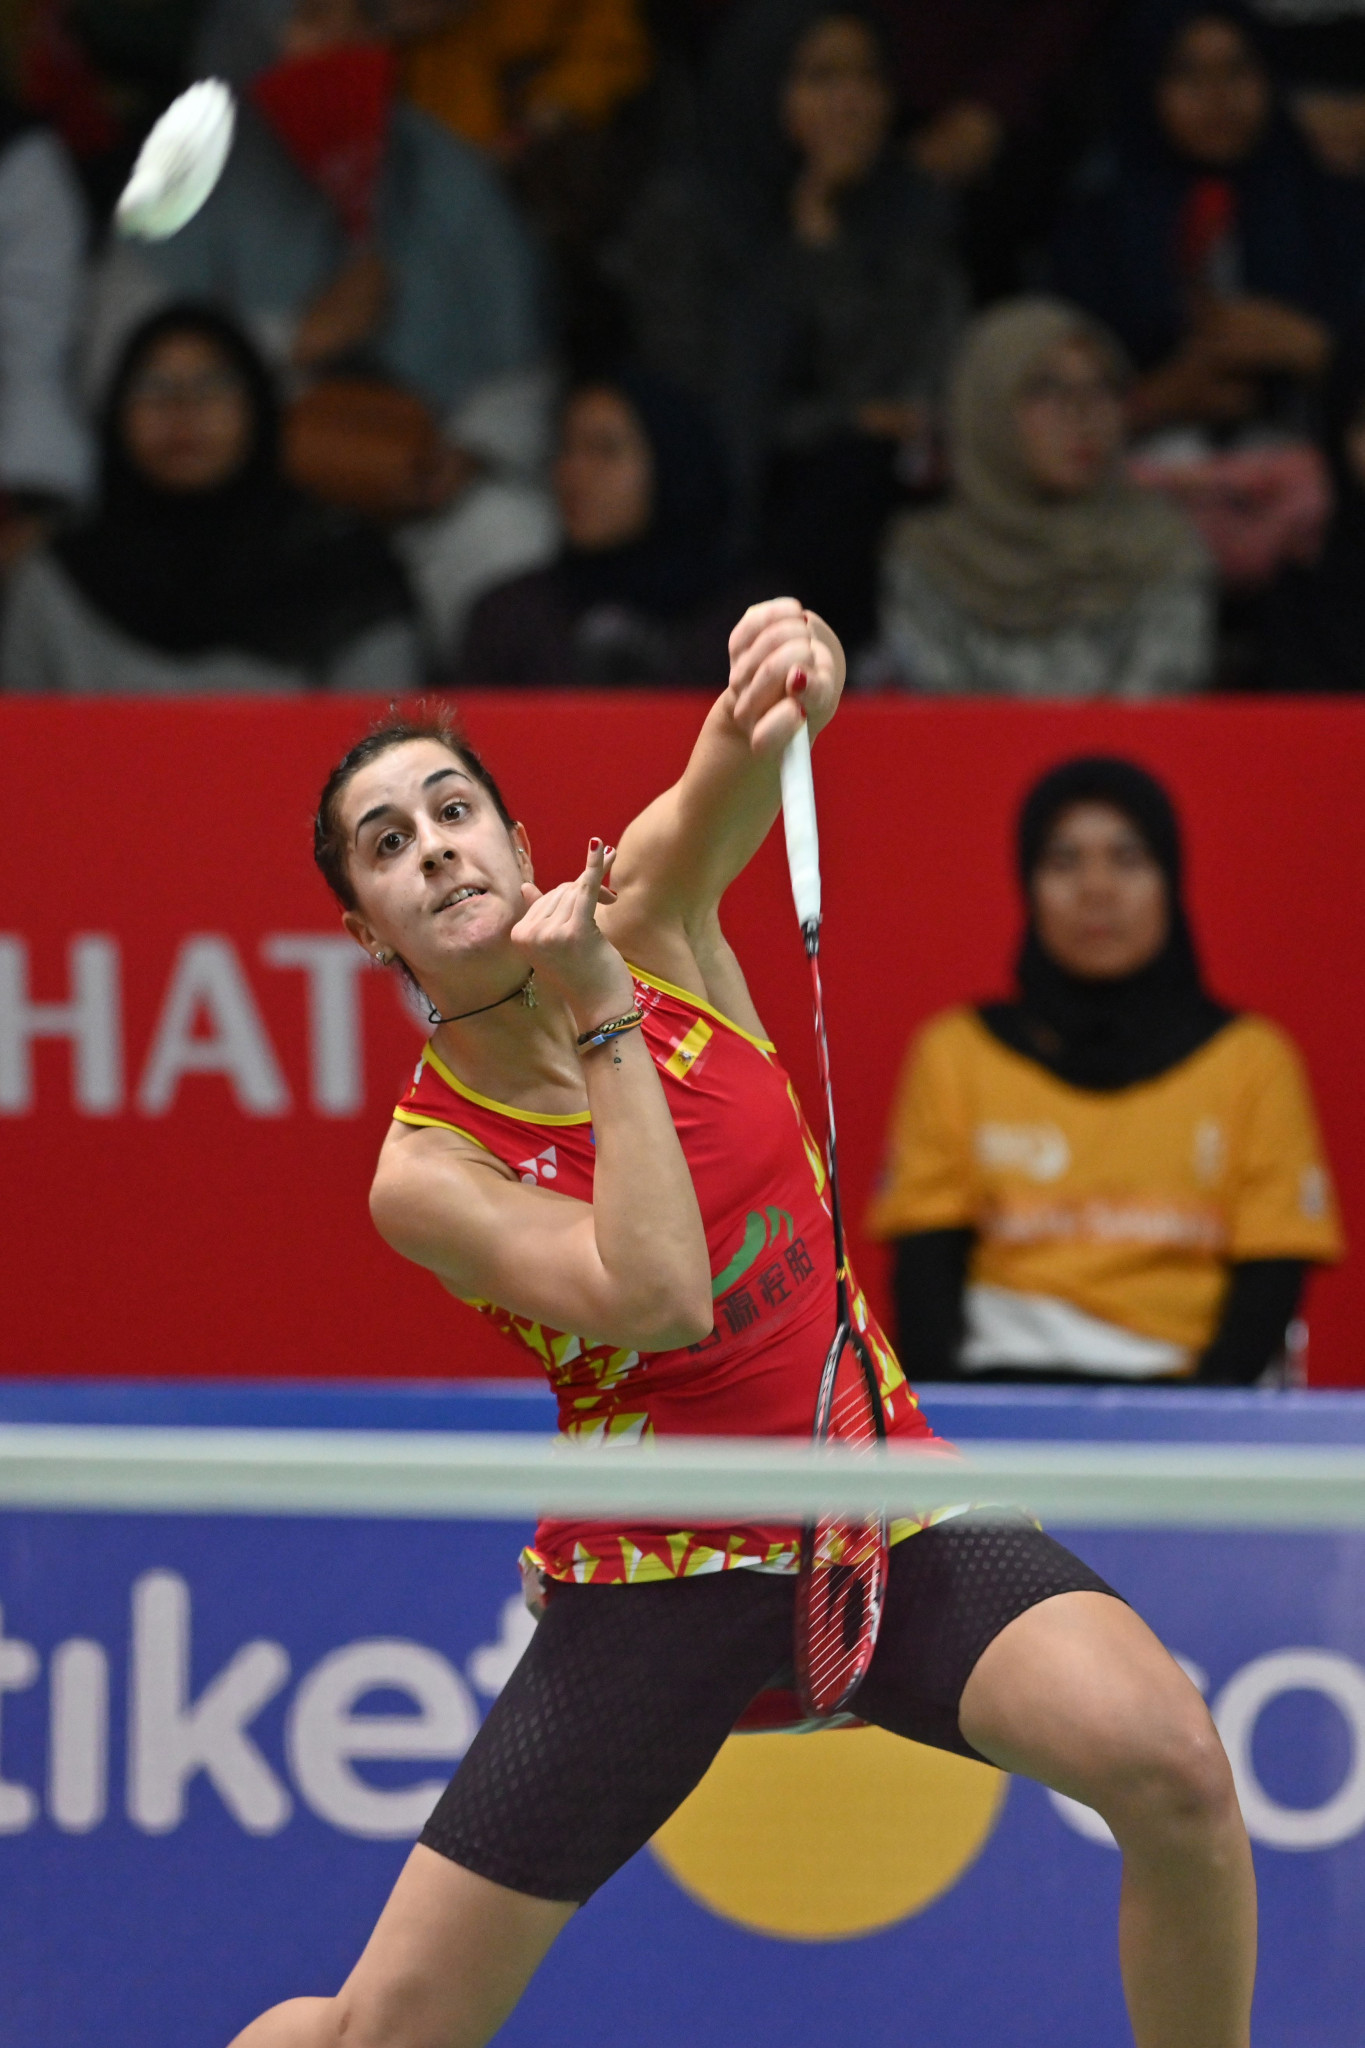 Spain's Carolina Marín remains on course to triumph at her home event ©Getty Images